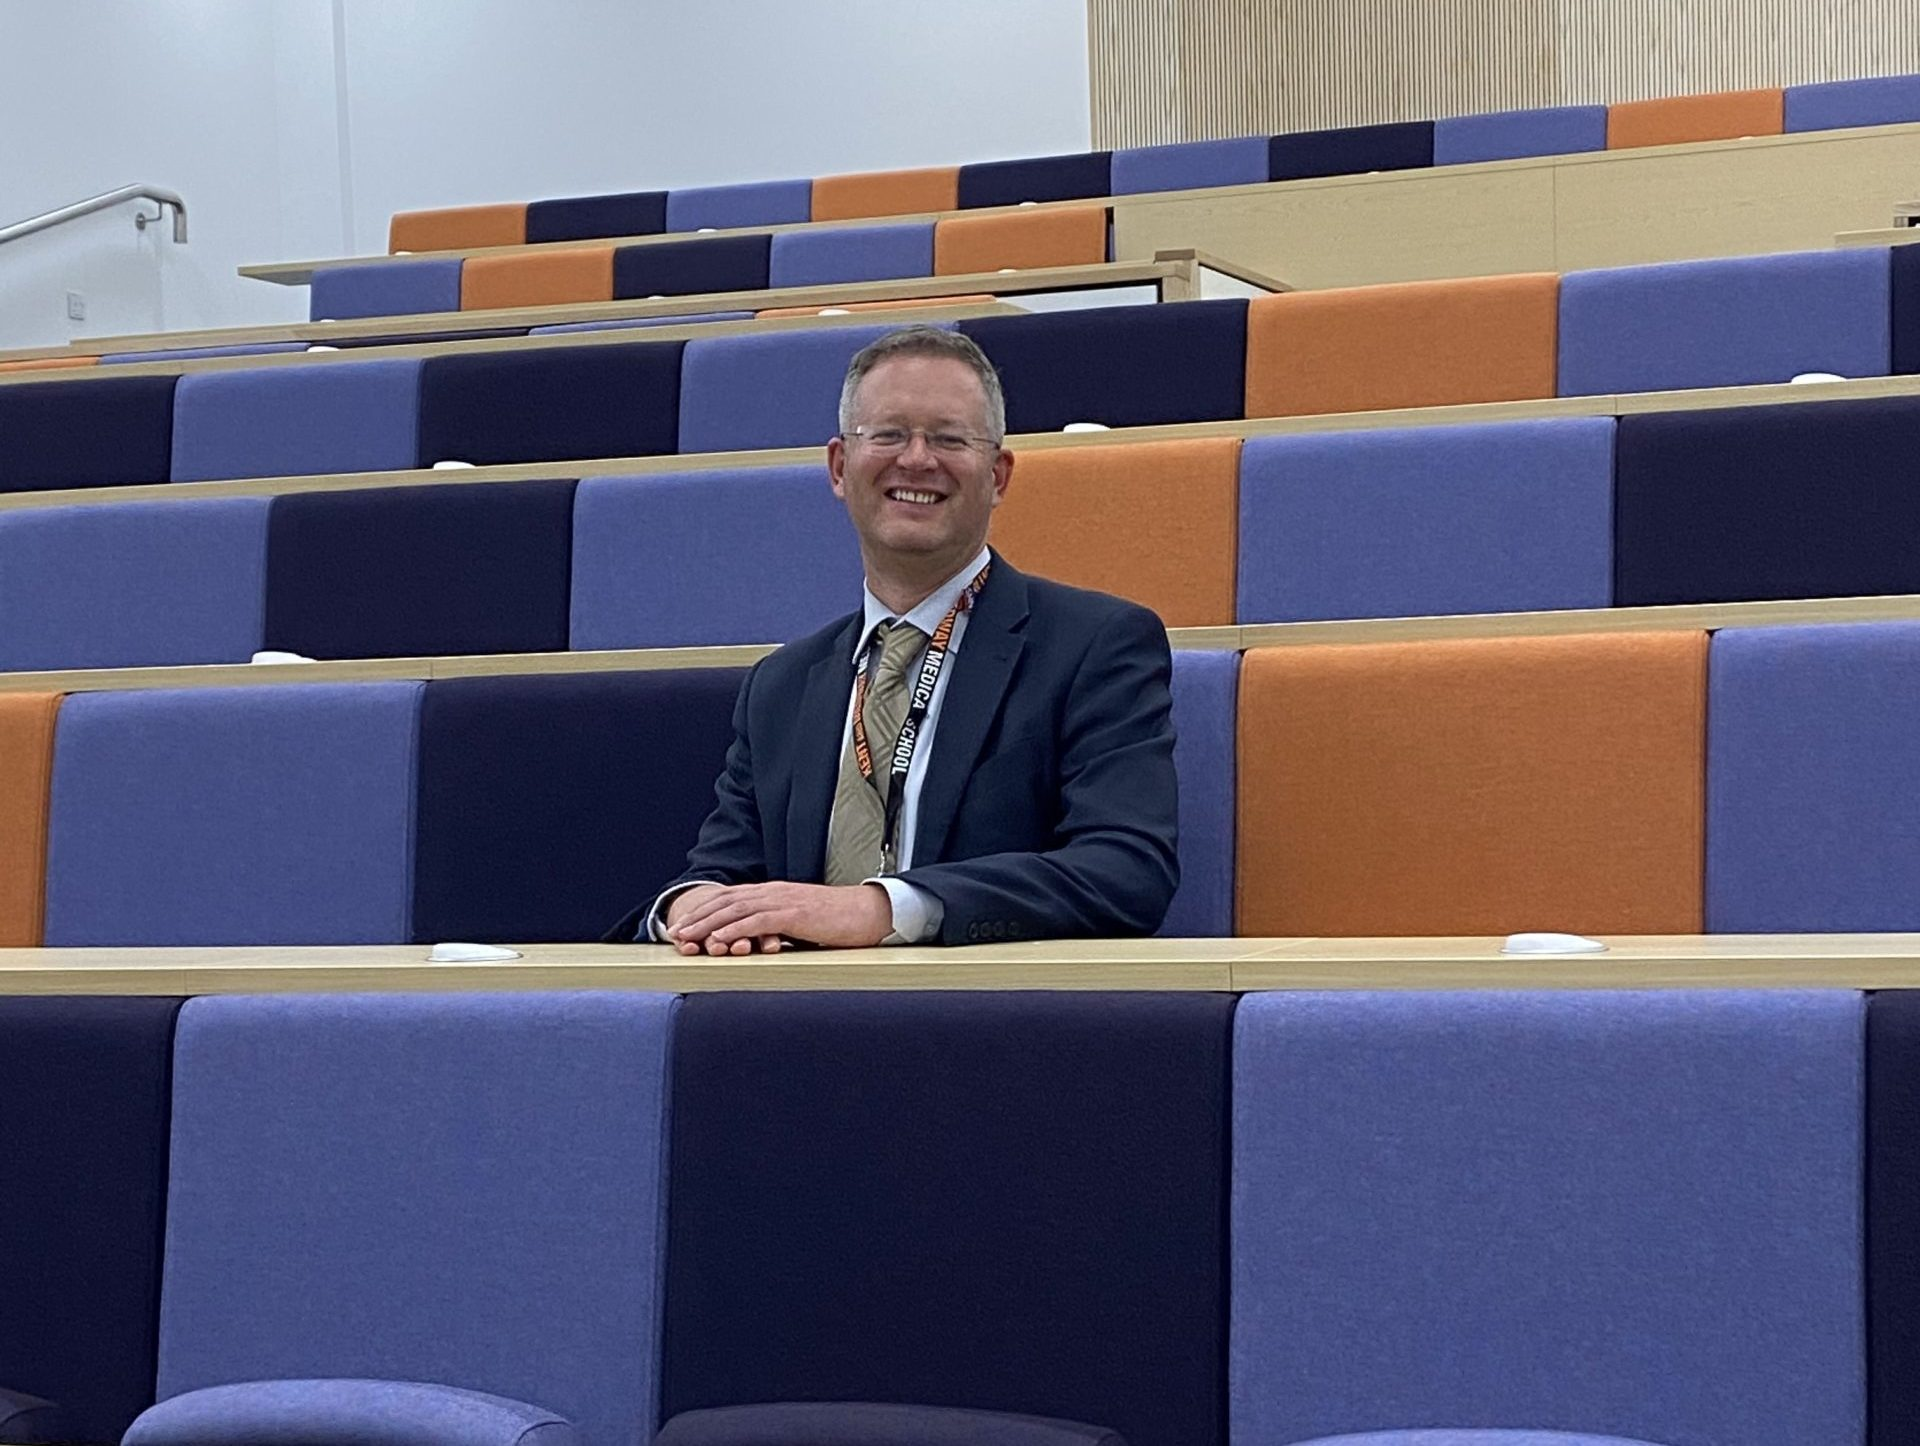 Image of Professor Chris Holland in the Lecture Theatre, Pears Building